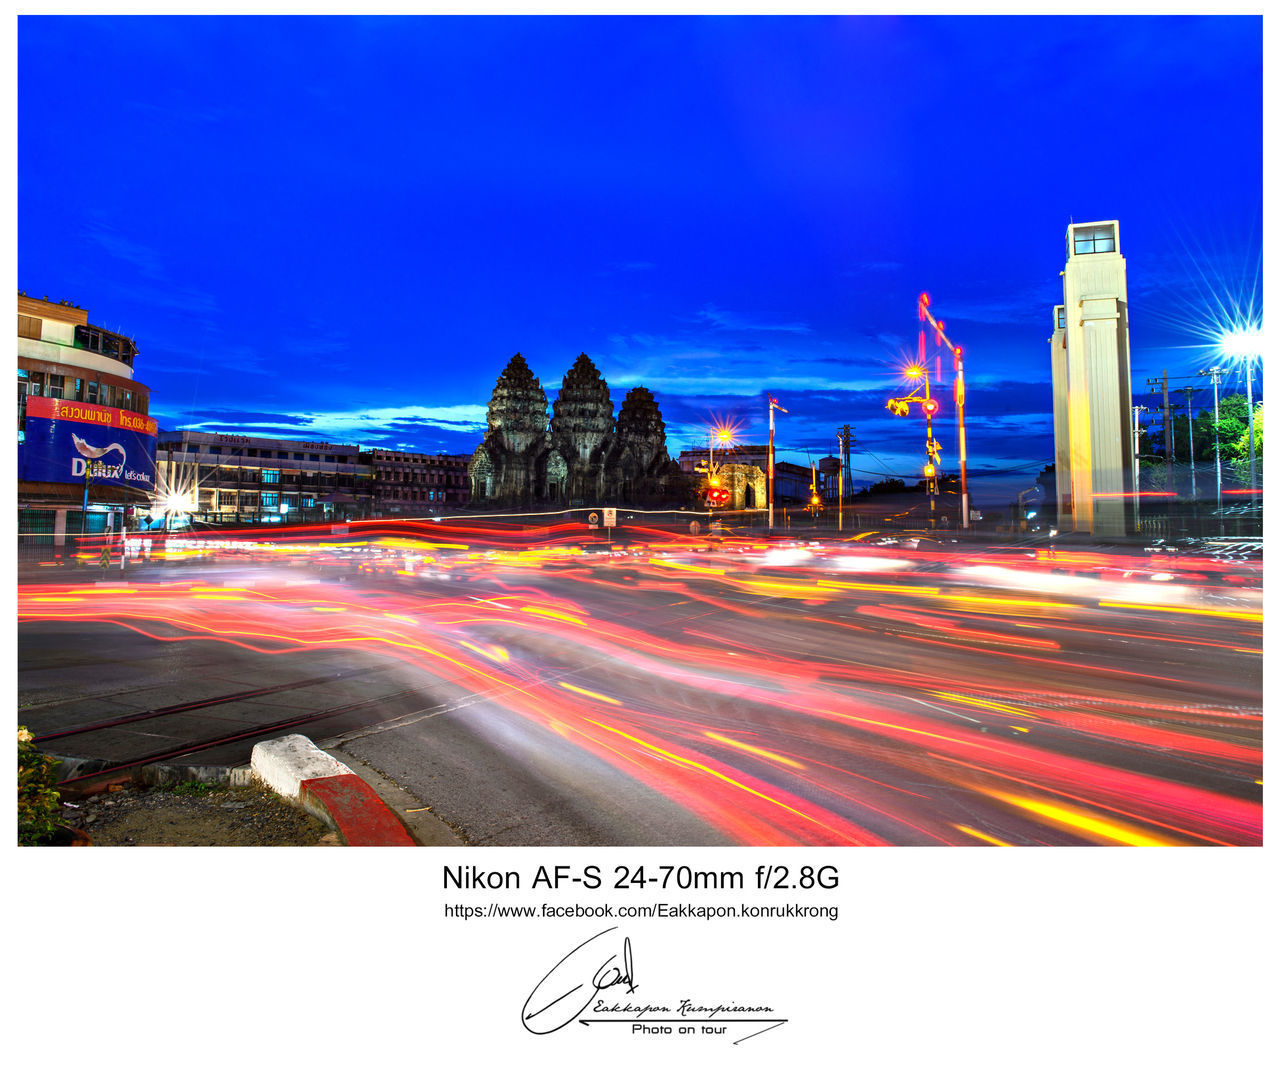 auto post production filter, long exposure, light trail, blurred motion, night, motion, street, speed, city, illuminated, outdoors, text, road, building exterior, city life, clear sky, transportation, street light, architecture, no people, sky, urban scene, high street, road sign, neon